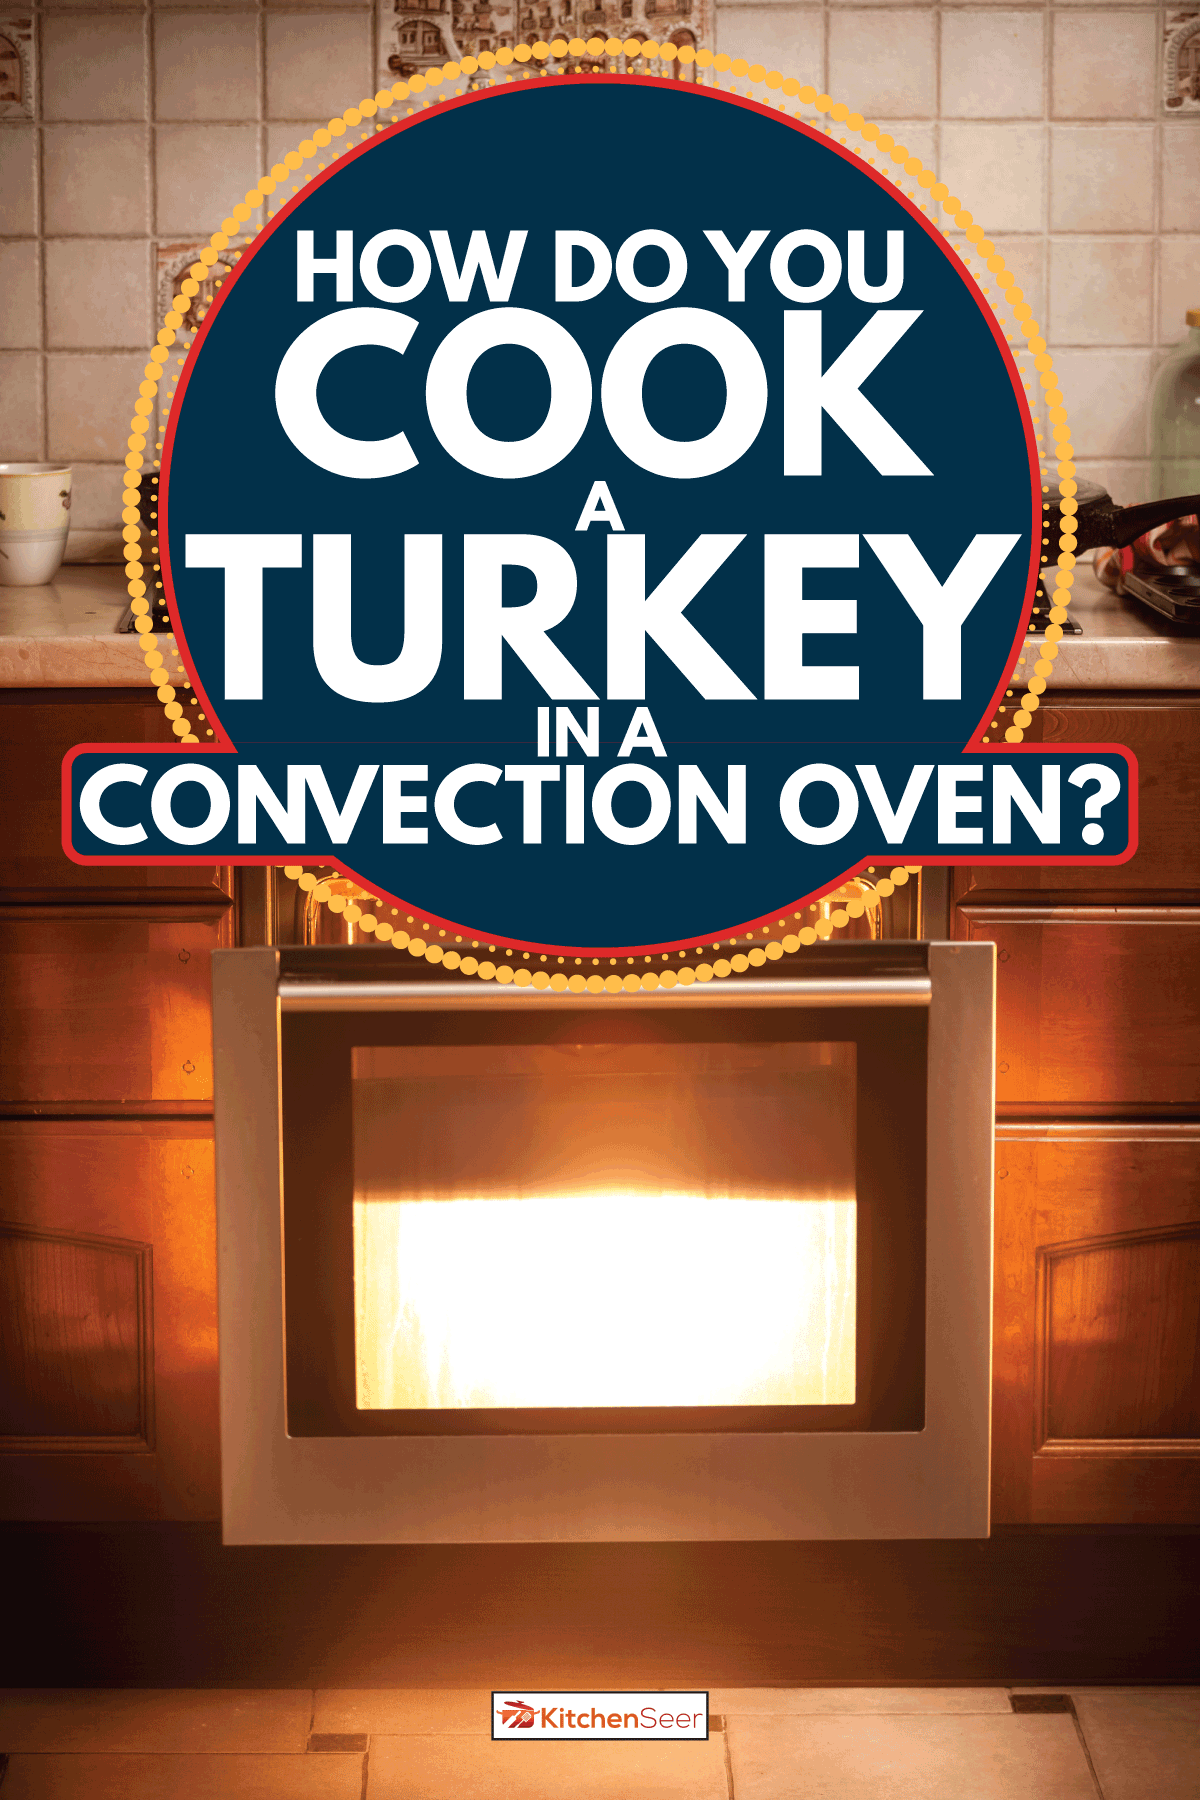 Hot oven and pan boiling on stove at kitchen. How Do You Cook A Turkey In A Convection Oven